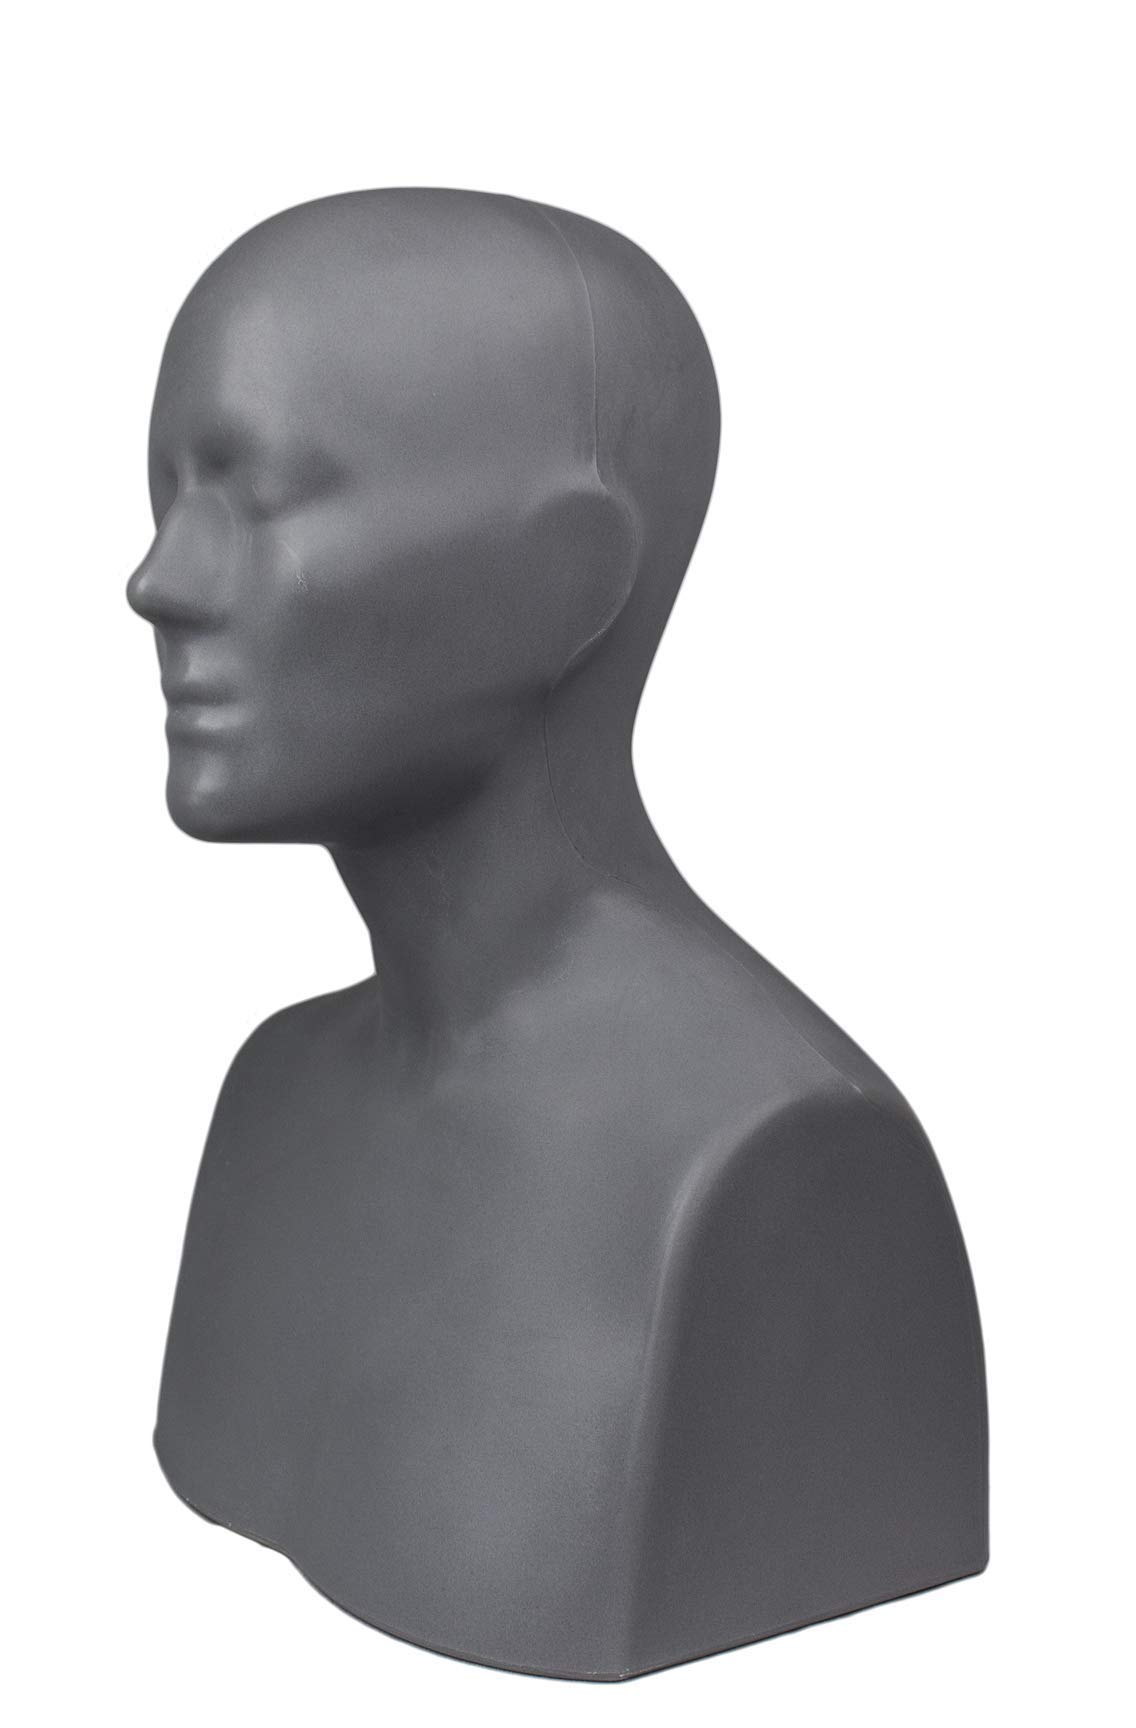 The Monster Makers Life Size Female''Alanna Head'' 2.0 Head Armature for Mask Making and Clay Busts by The Monster Makers (Image #4)